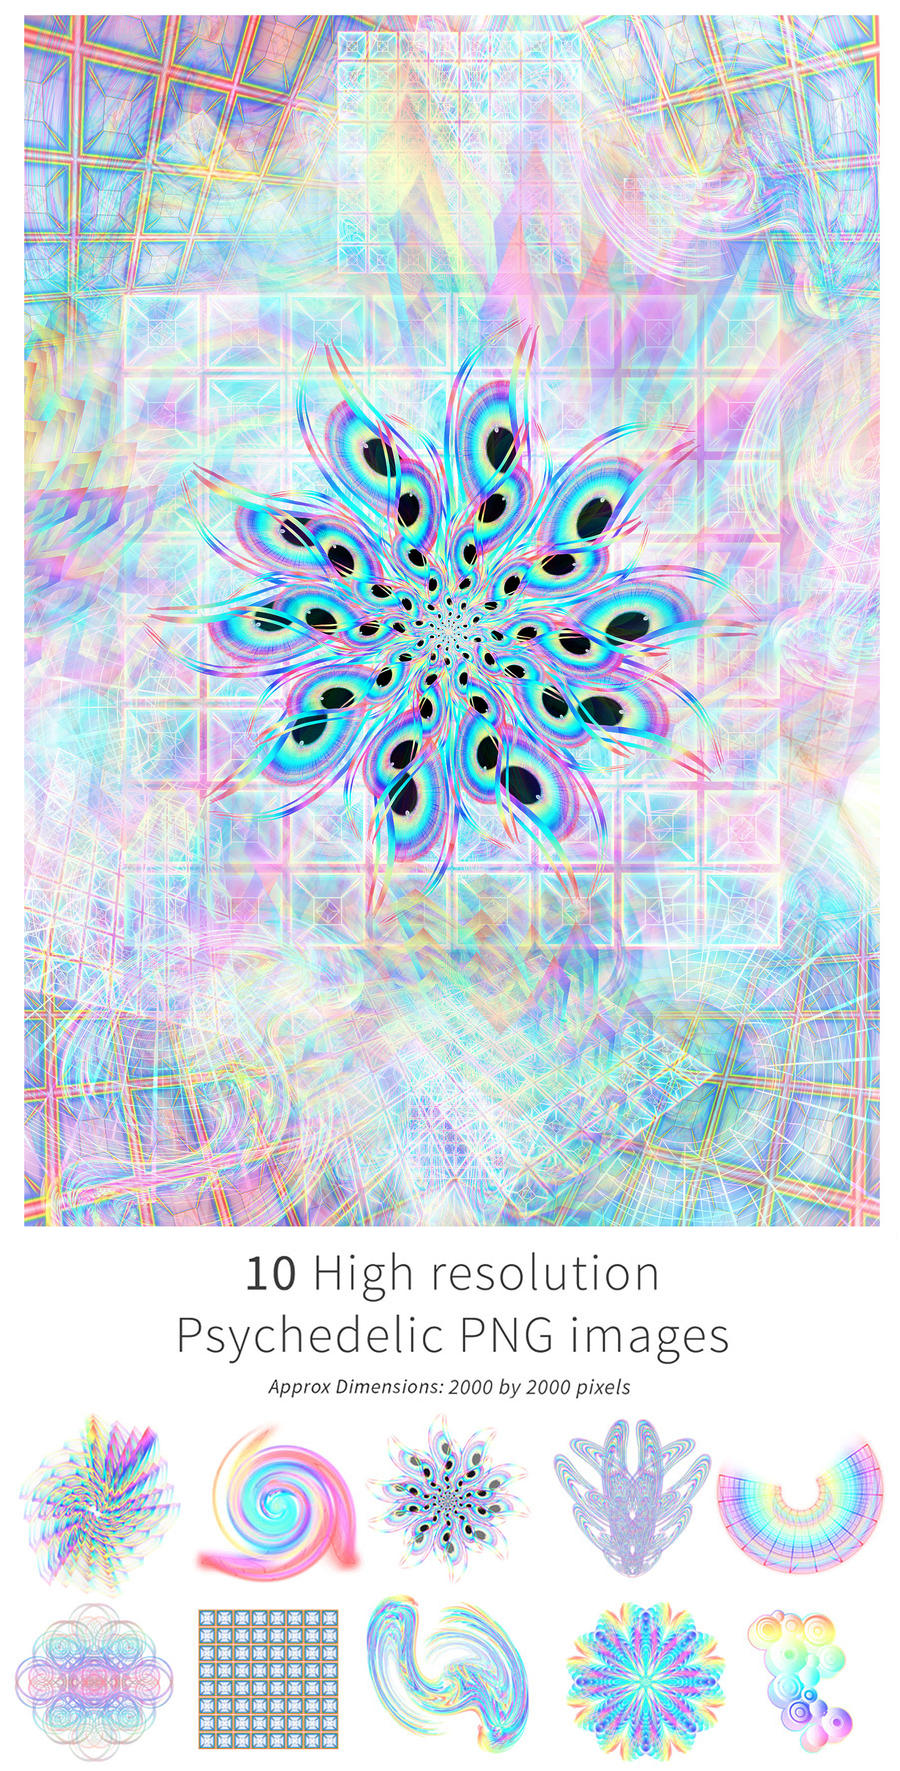 Psychedelic Stock Imagery Pack 7 by LouisDyer on DeviantArt: louisdyer.deviantart.com/art/psychedelic-stock-imagery-pack-7...